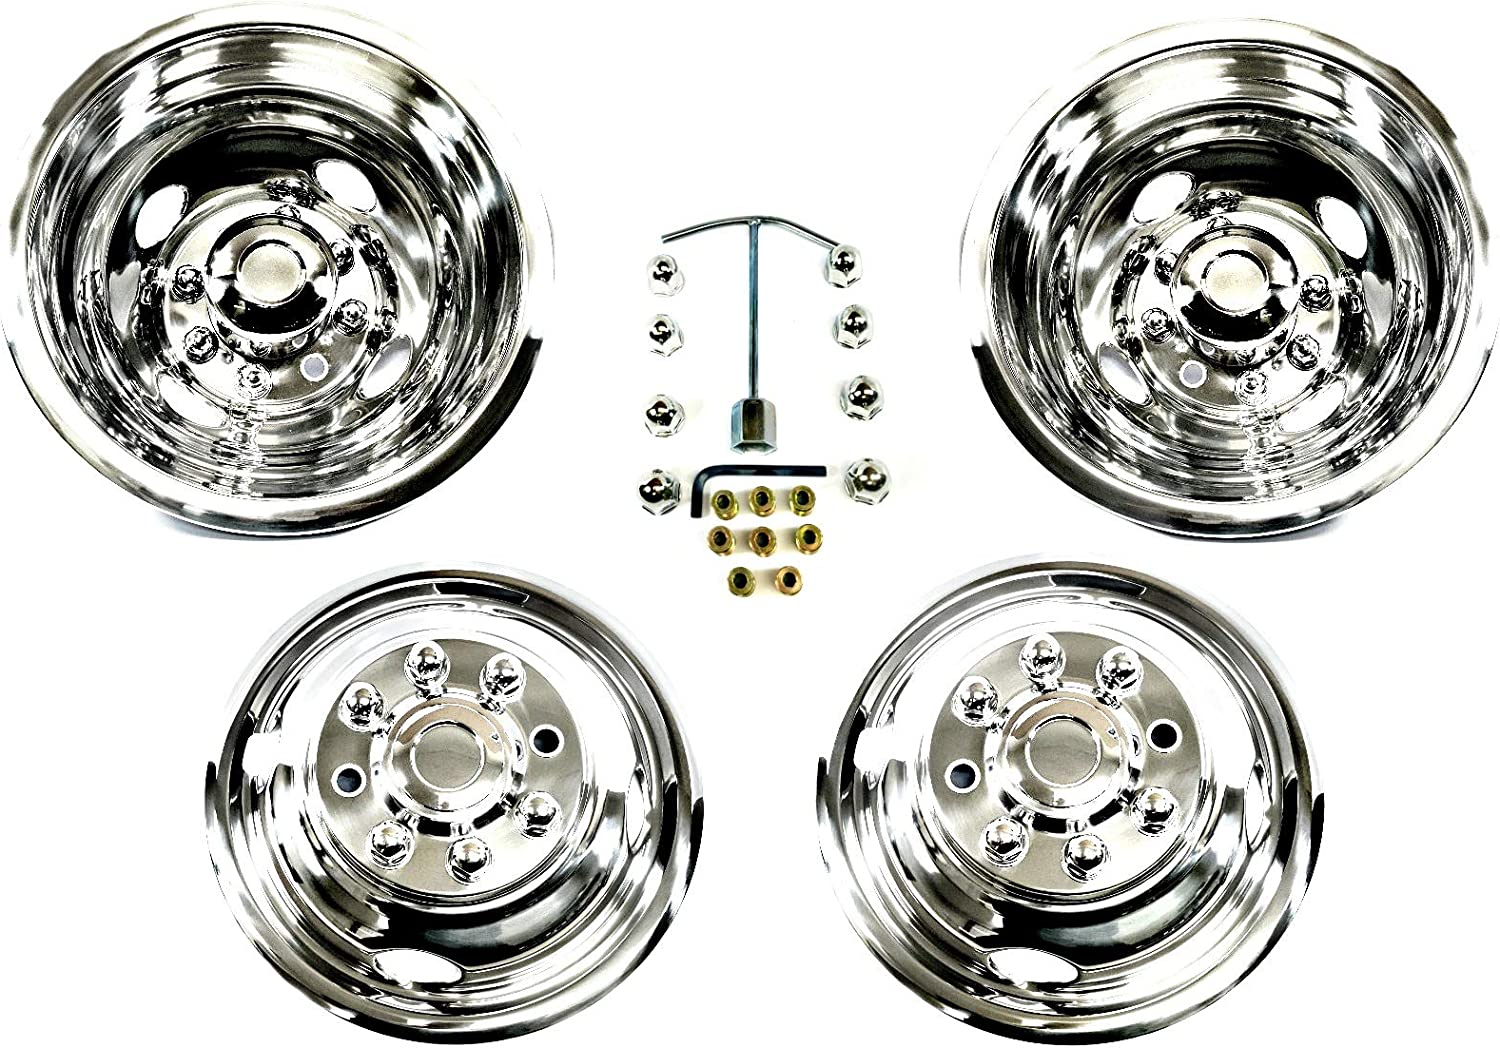 Kaper II SS-1604-EZN8 Polished Stainless Steel Ford Truck Wheel Simulator Set 16 x 6 6.5 Bolt Circle 8 Lug 8 Hand Hole, Easy On Push on Mounting